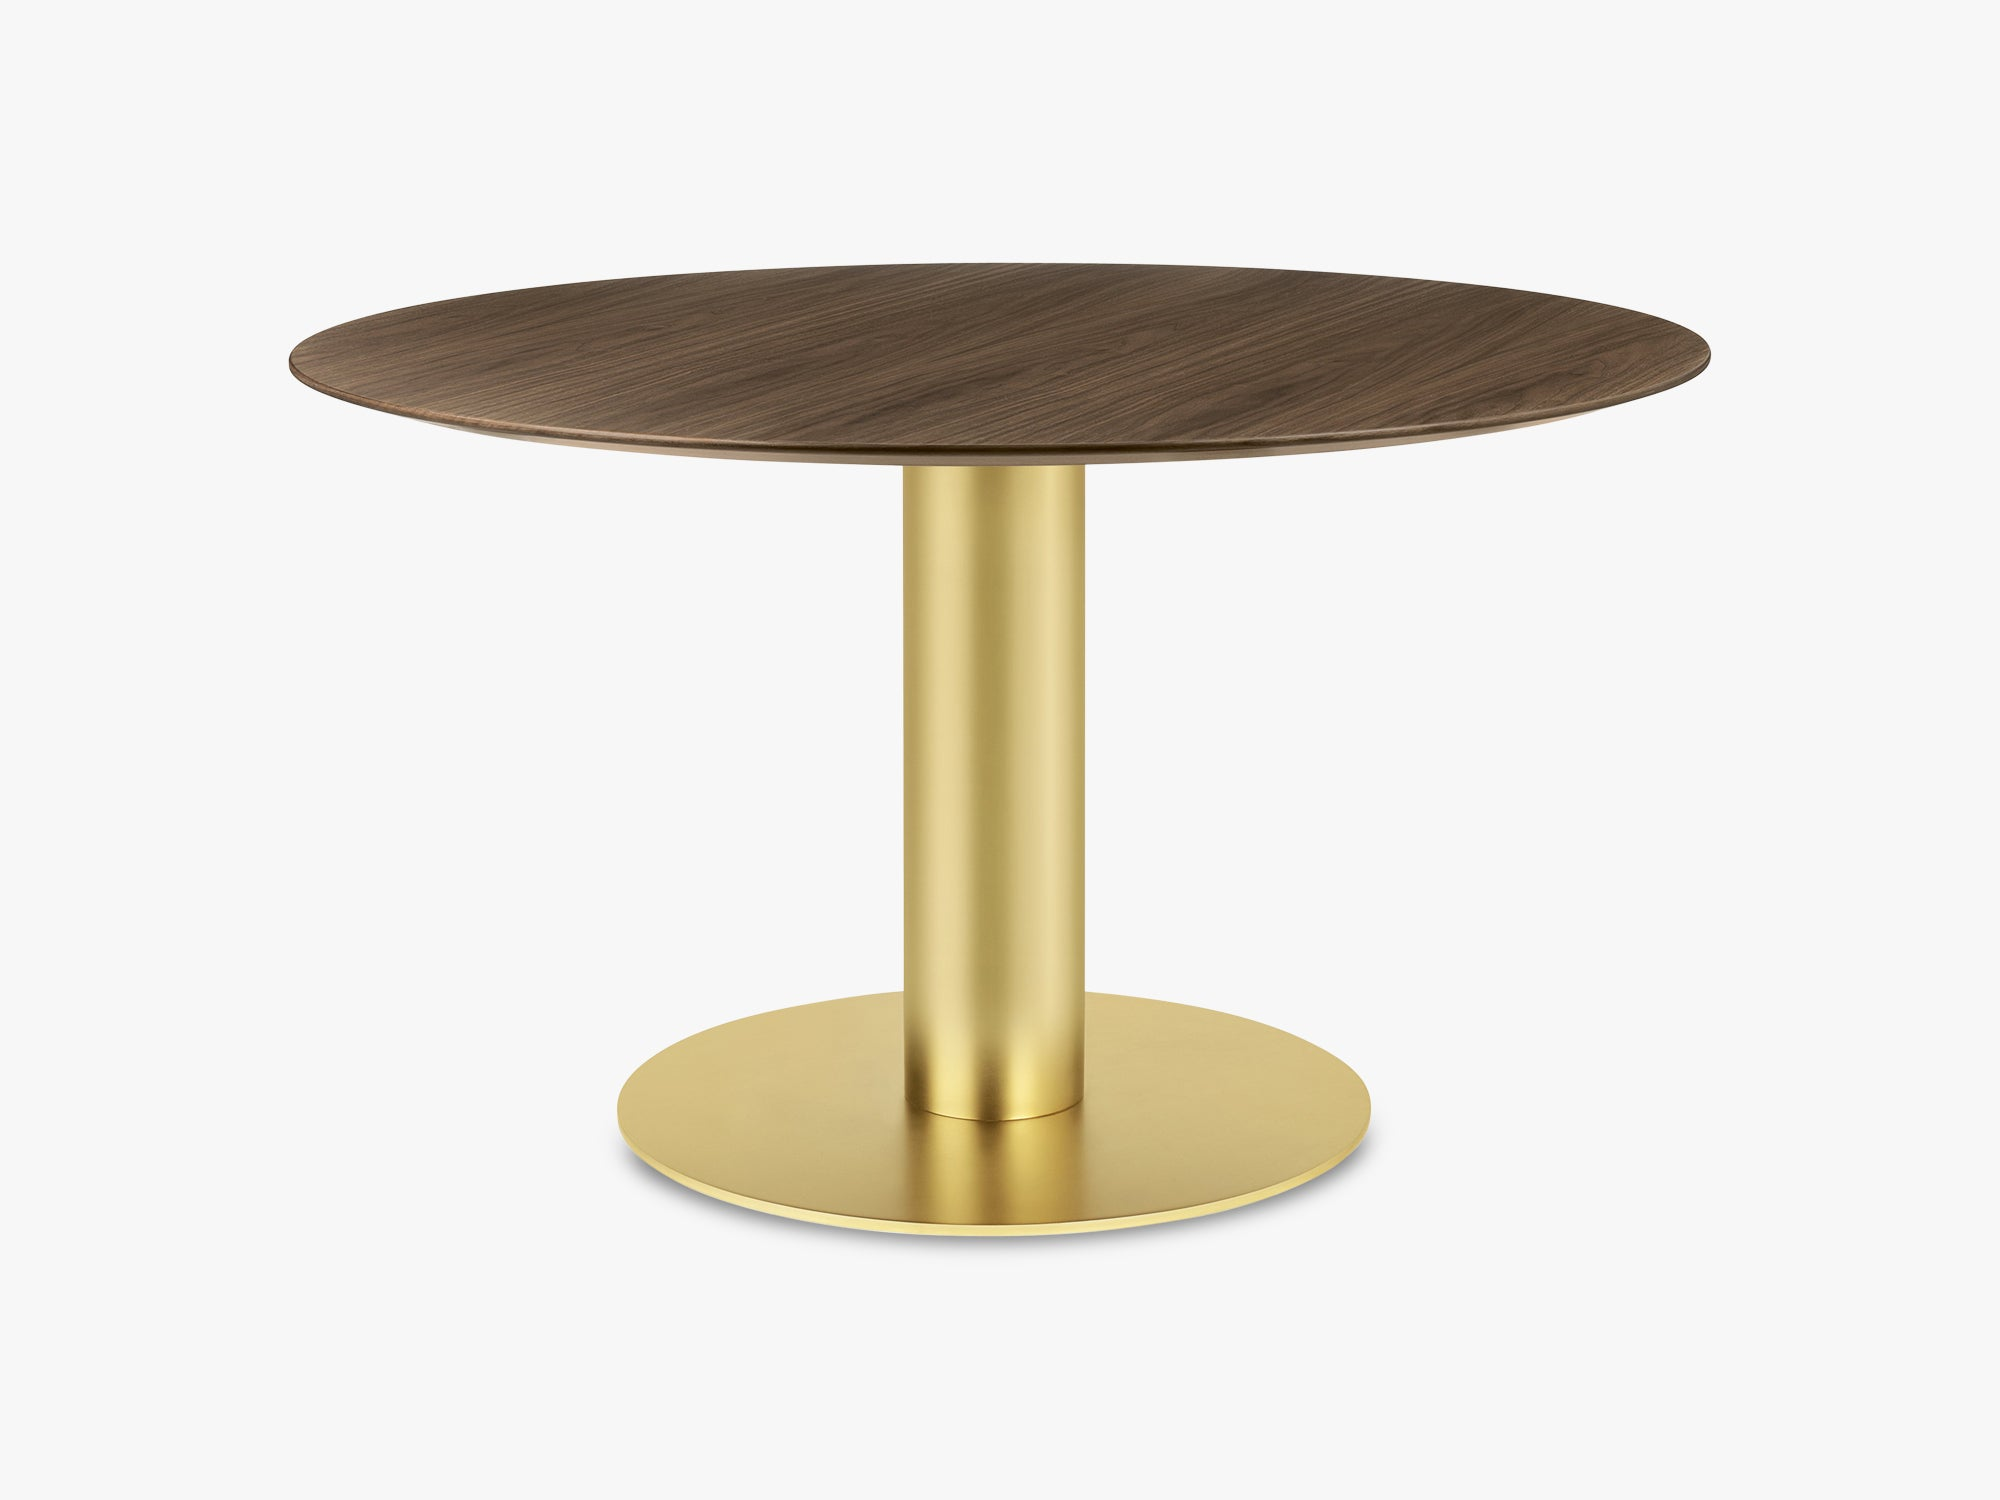 GUBI 2.0 Dining Table - Round - Ø130 - Brass base, Walnut top fra GUBI